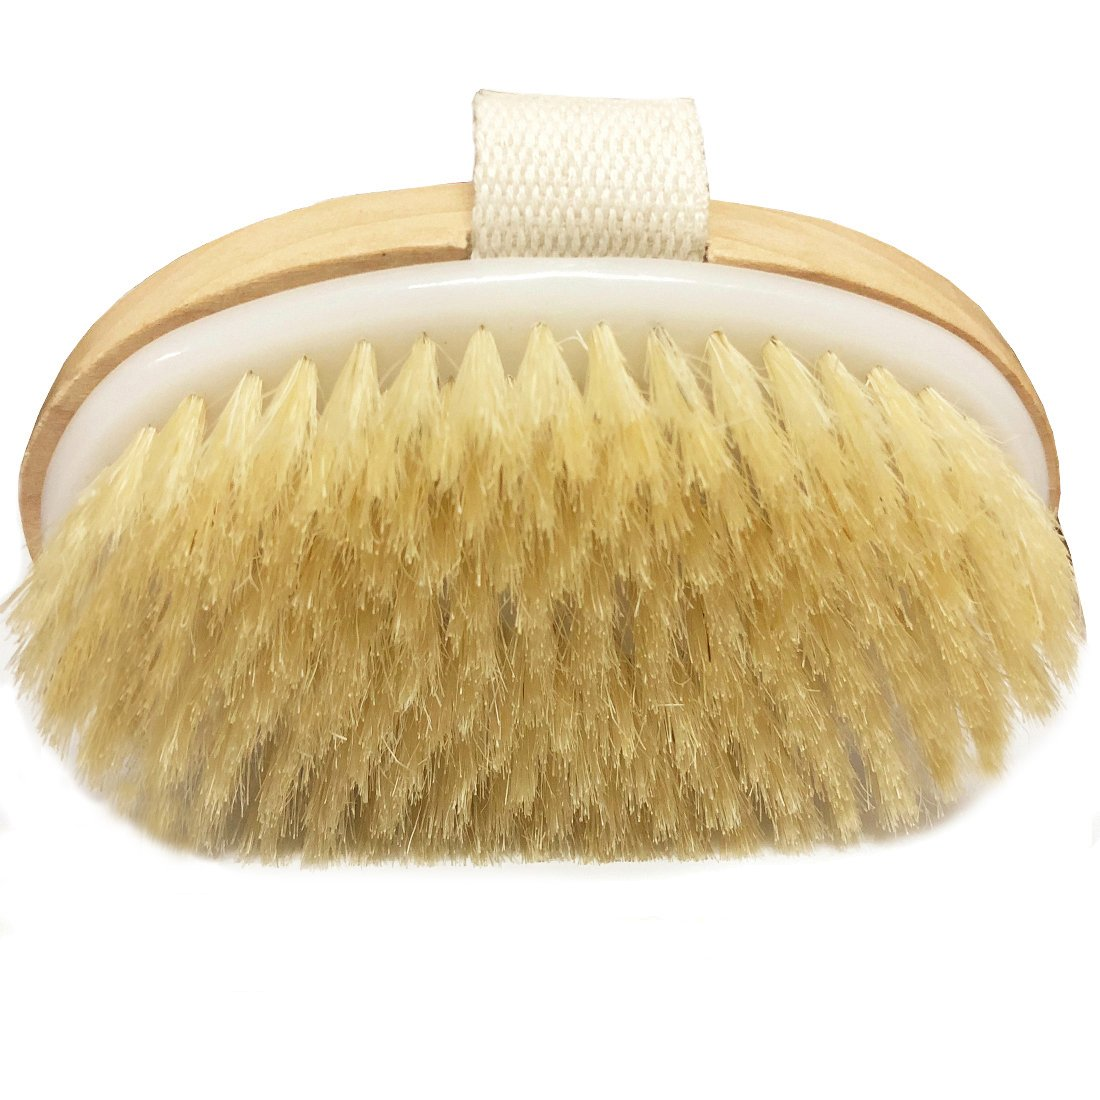 Dry Brushing Body Brush - Exfoliating Brush - Natural Bristle Dry Brush for Remove Dead Skin Toxins,Cellulite Treatment,Improves Lymphatic Functions,Exfoliates,Stimulates Blood Circulation Angel Kiss